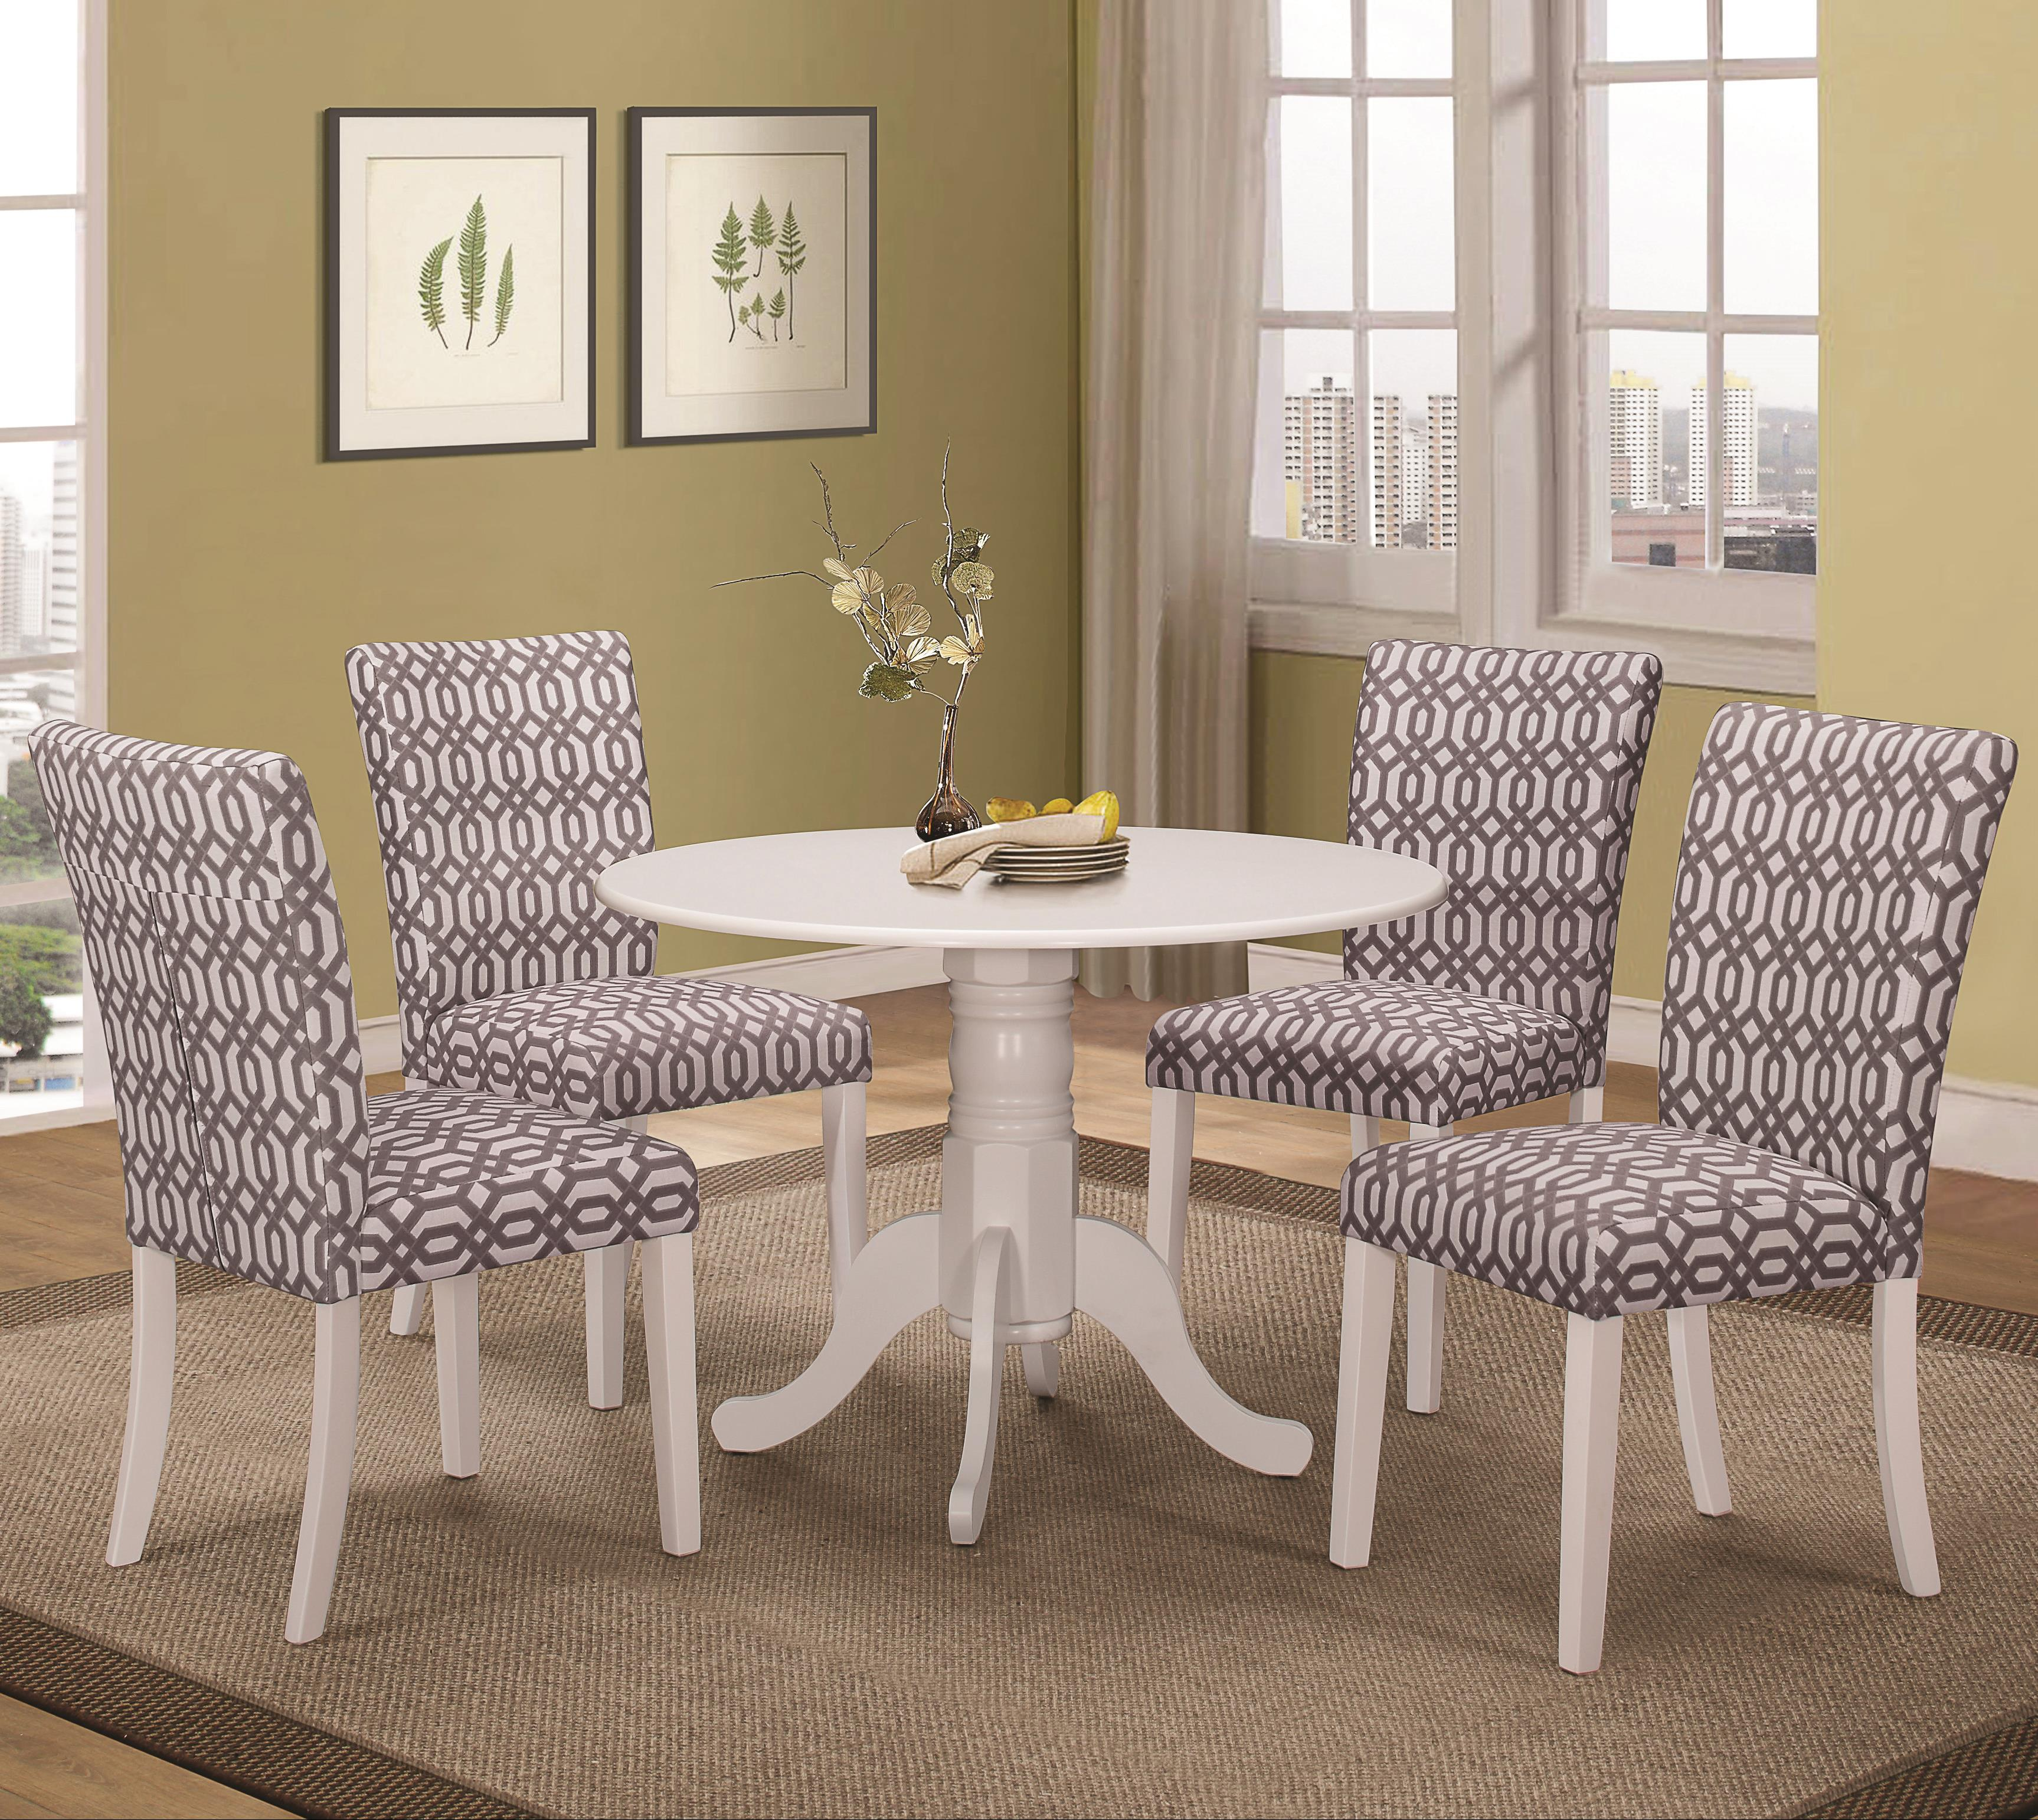 Coaster Allston 5 Pc Table & Chair Set - Item Number: 106641+642